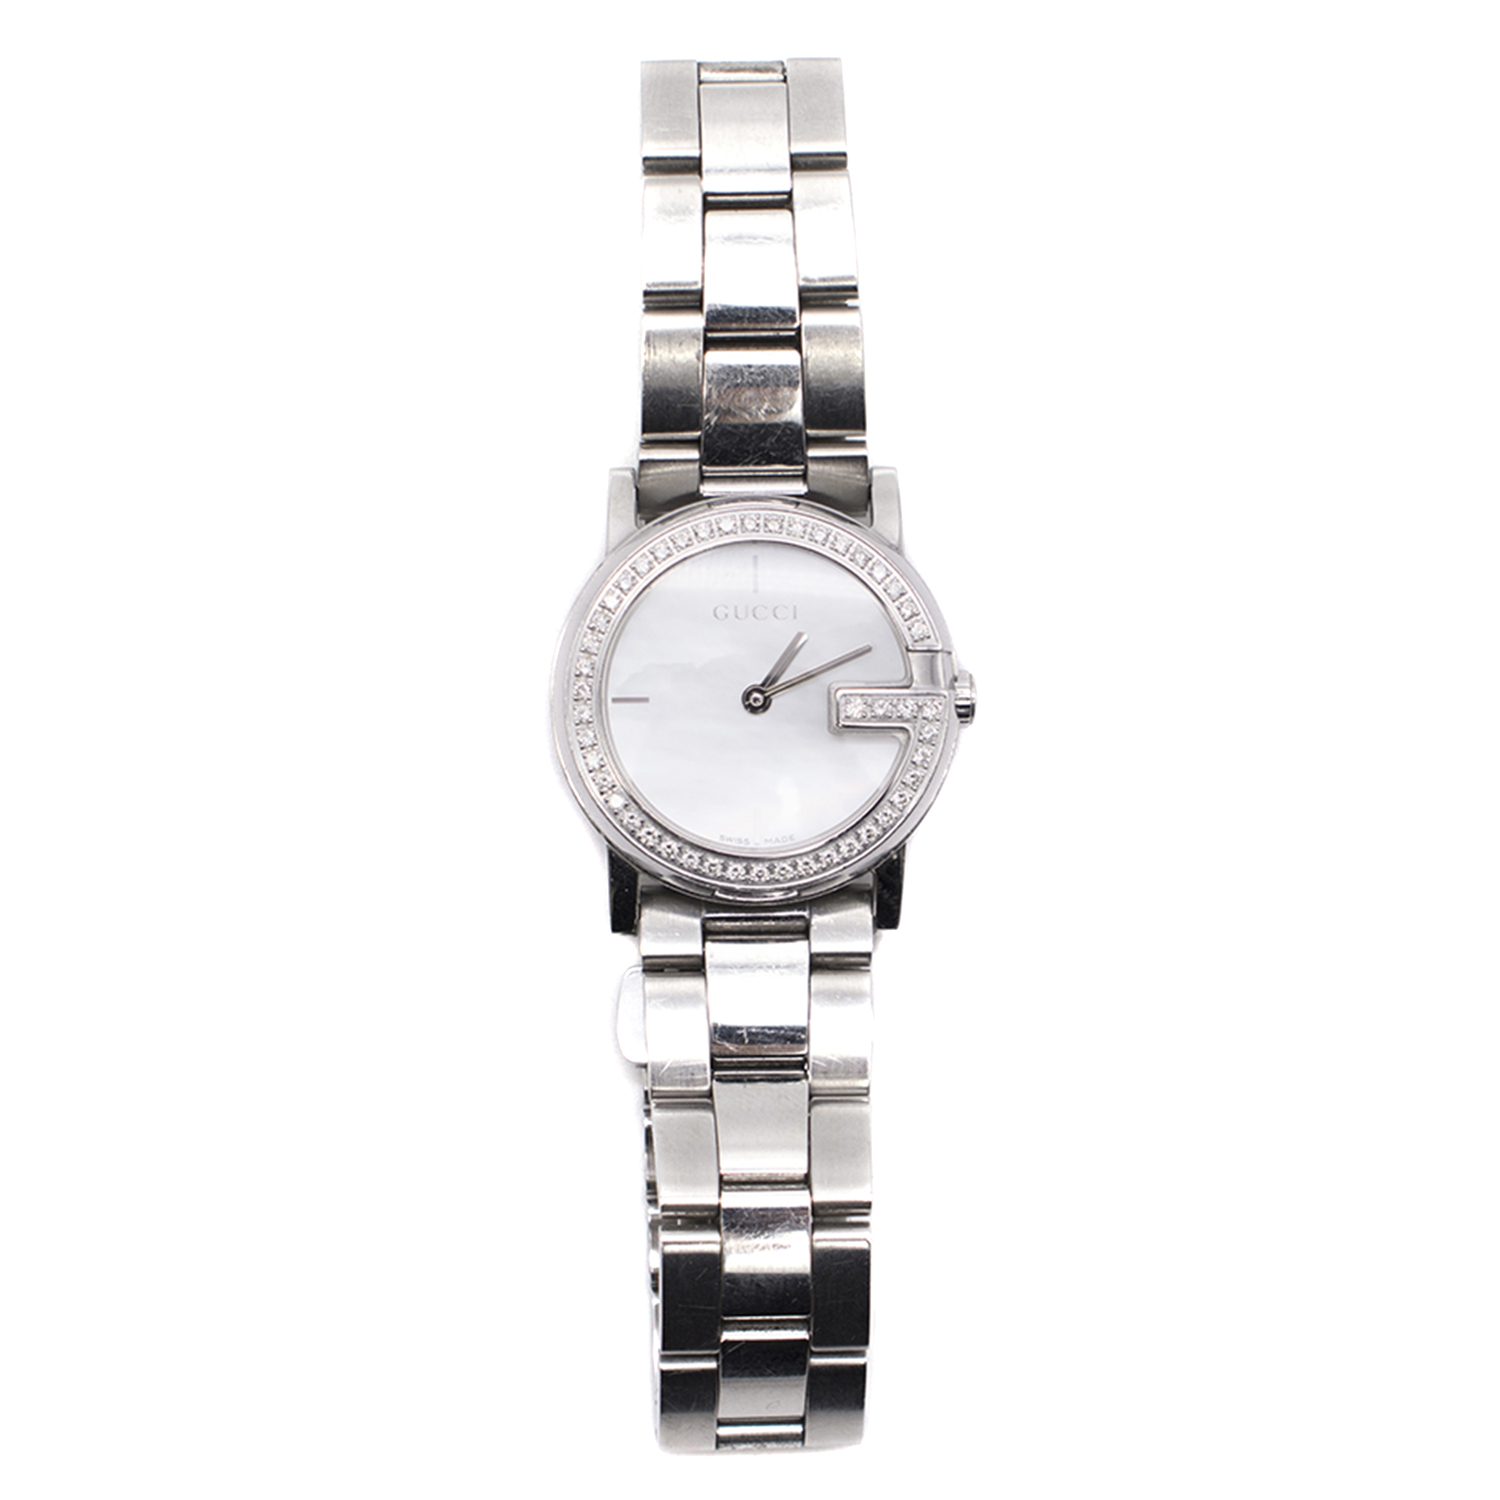 74a2a235fde Gucci Watch Stainless Steel Sapphire Crystal And Diamond Encrusted ...